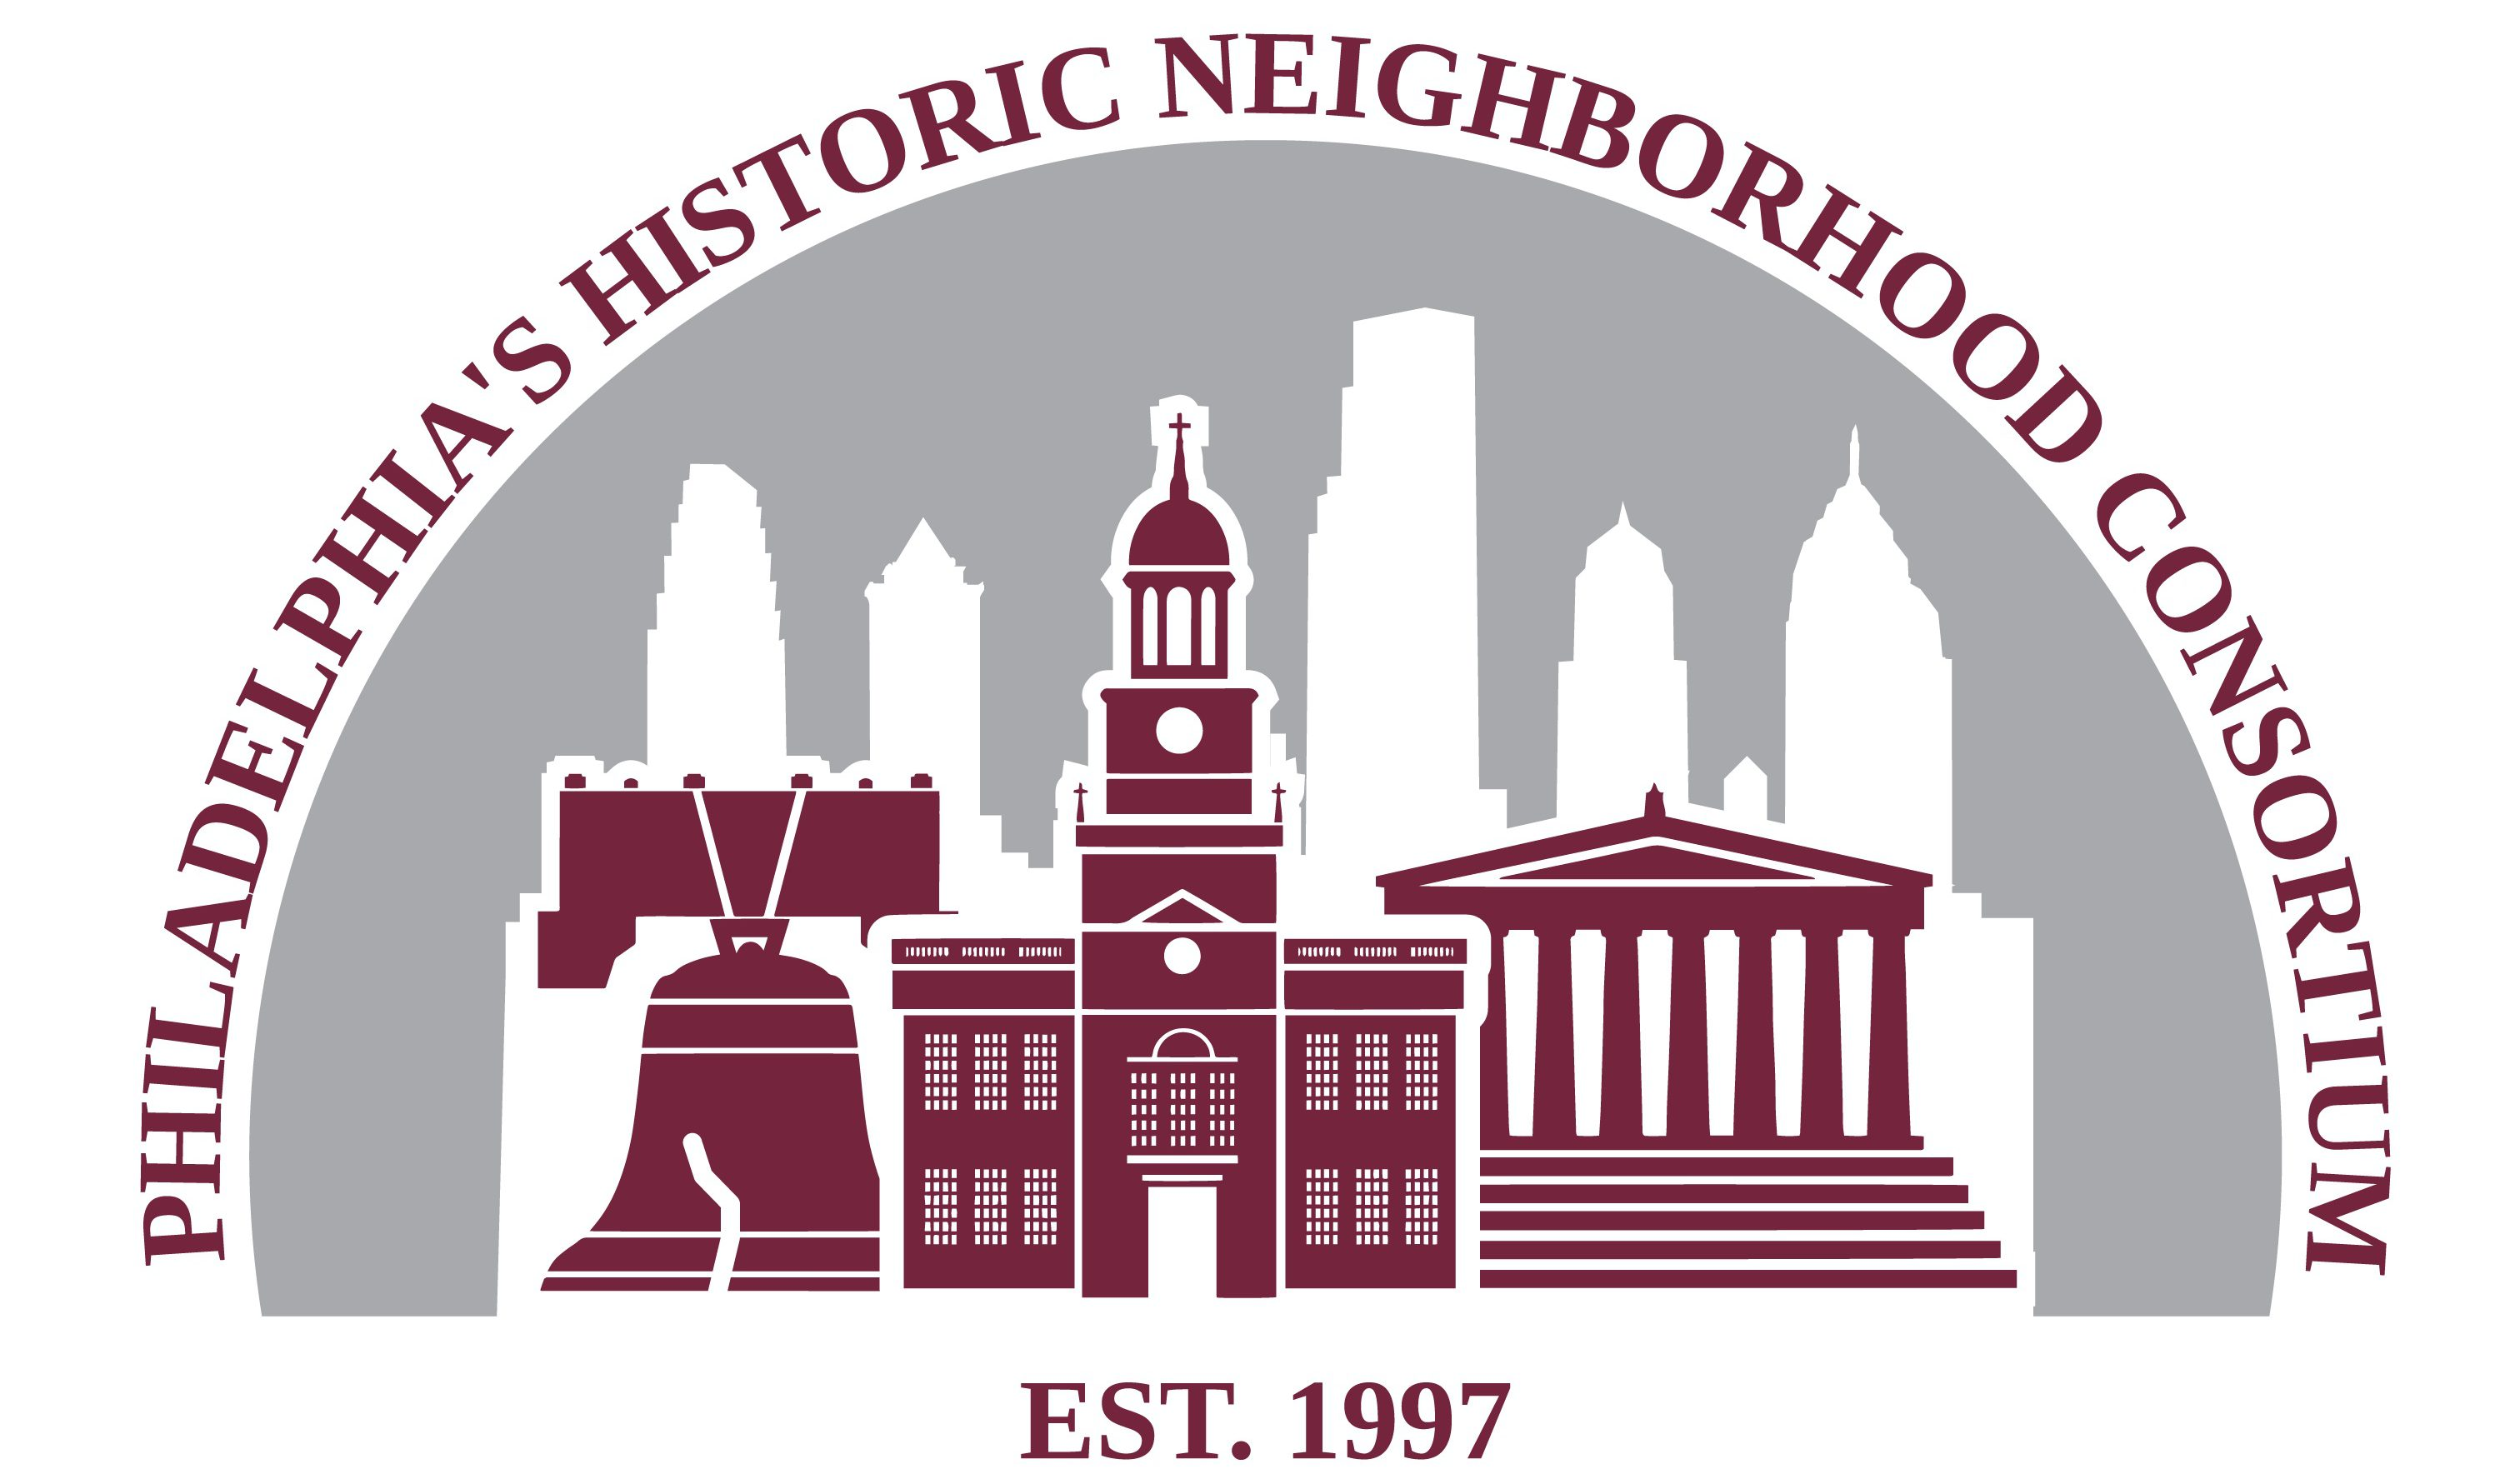 Philadelphia's Historic Neighborhood Consortium